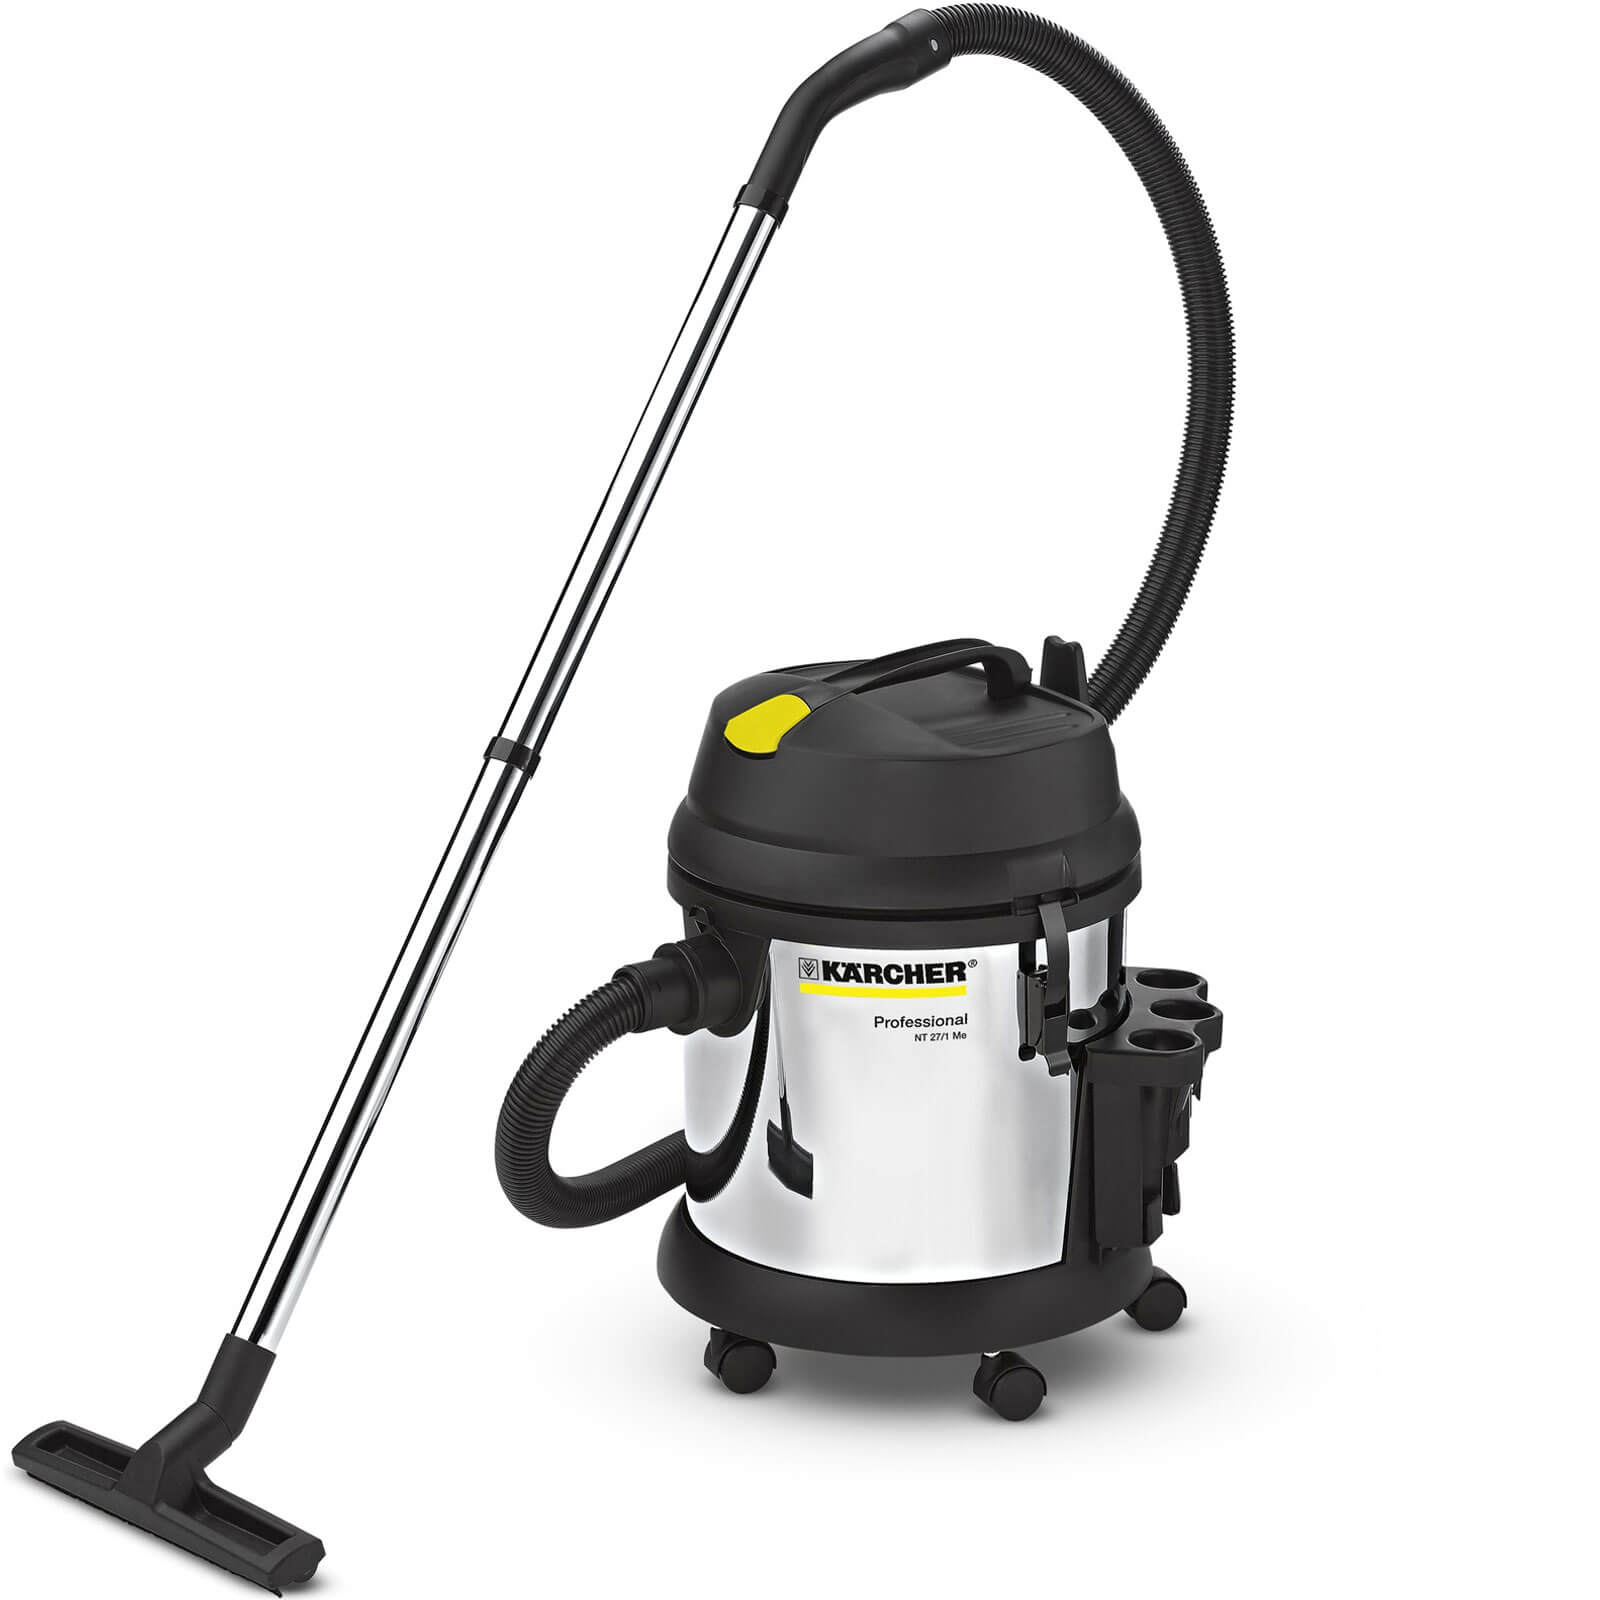 Karcher NT 27/1 ME Professional Metal Wet and Dry Vacuum Cleaner 240v